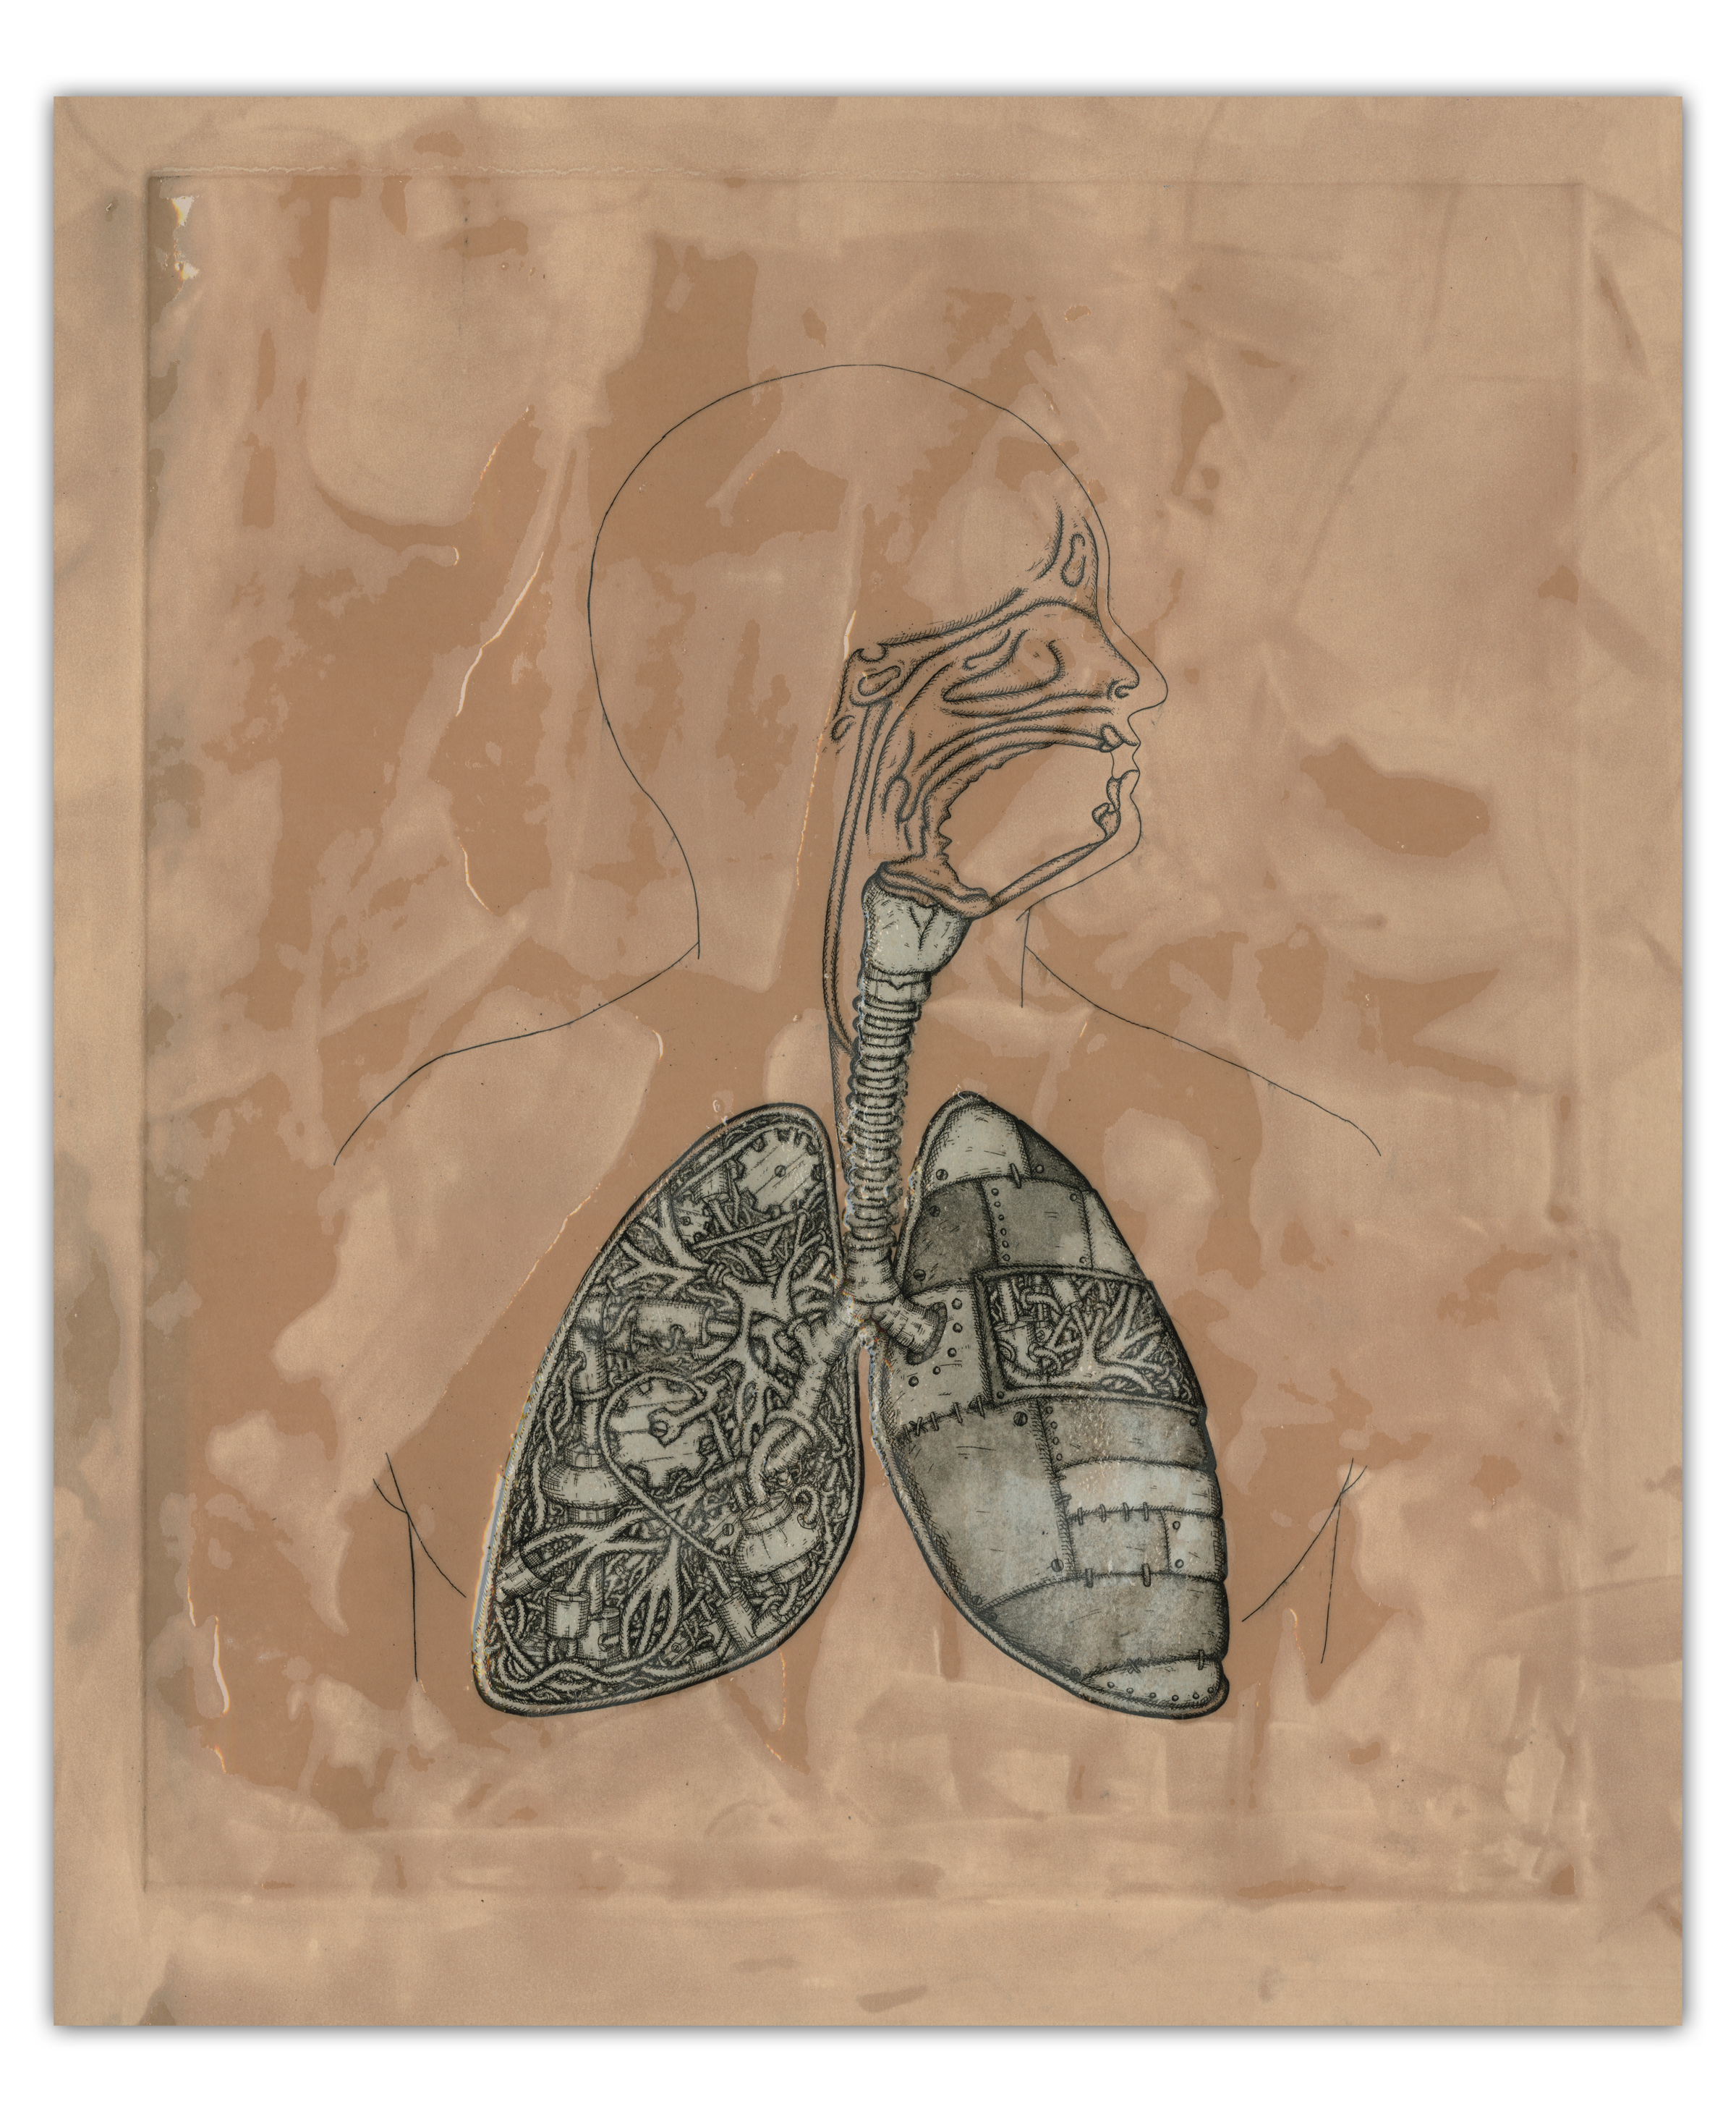 lung brown and blue.jpg